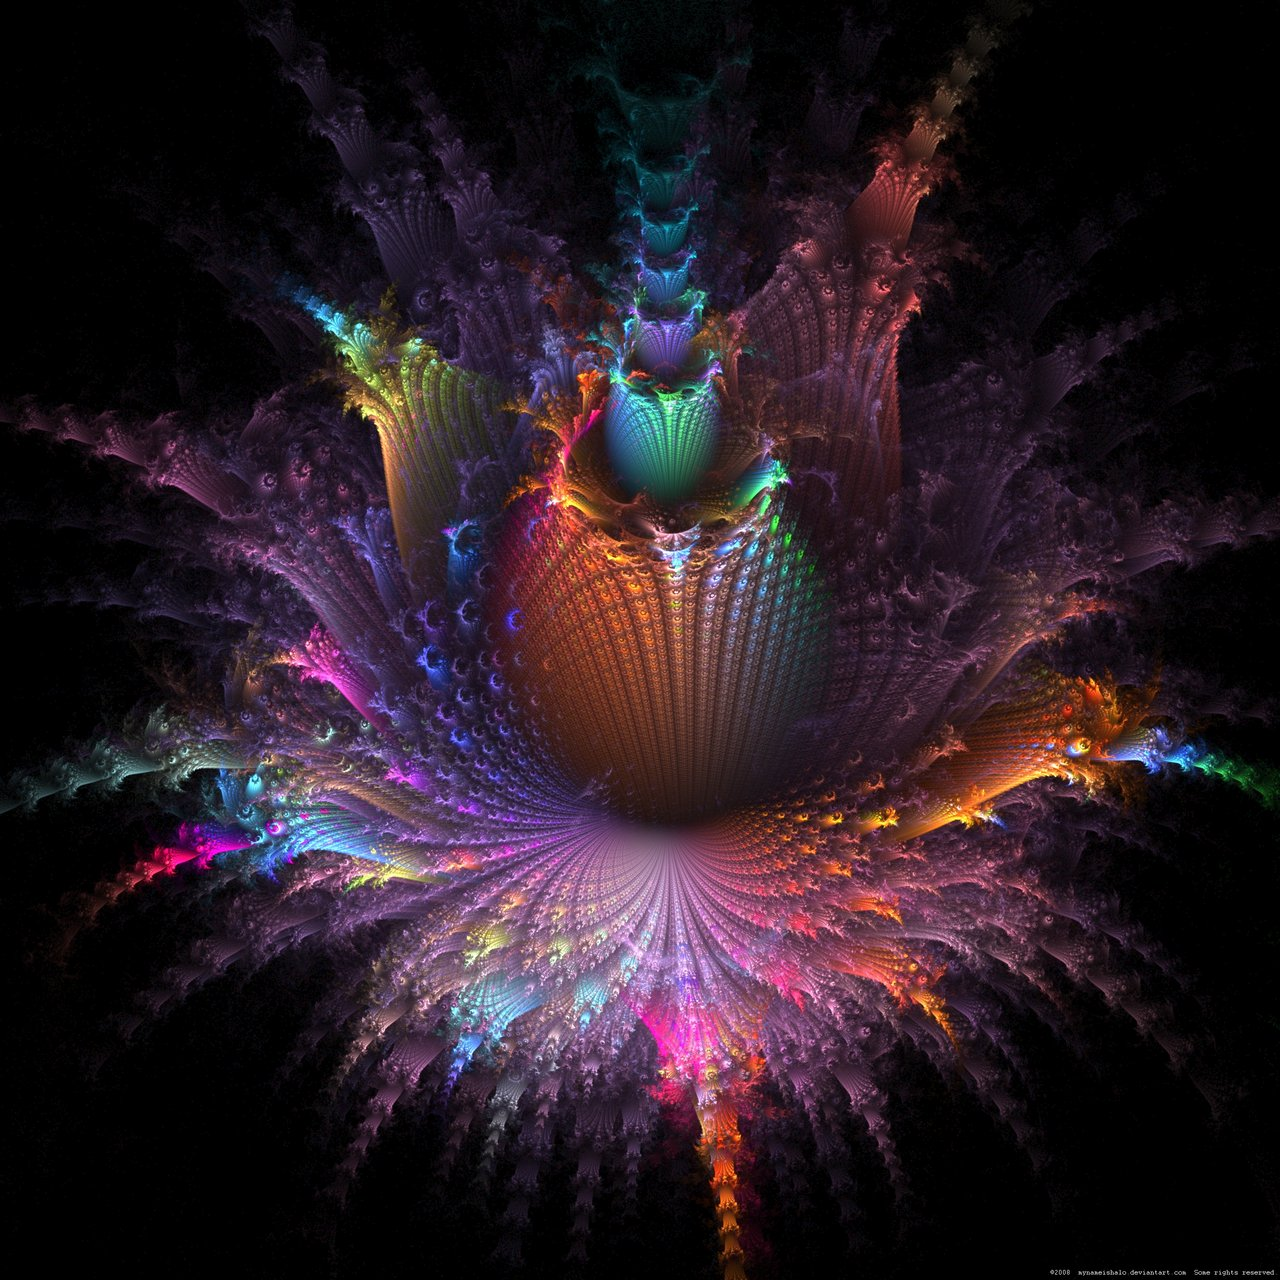 Pin Crazy Trippy Art Image Search Results on Pinterest